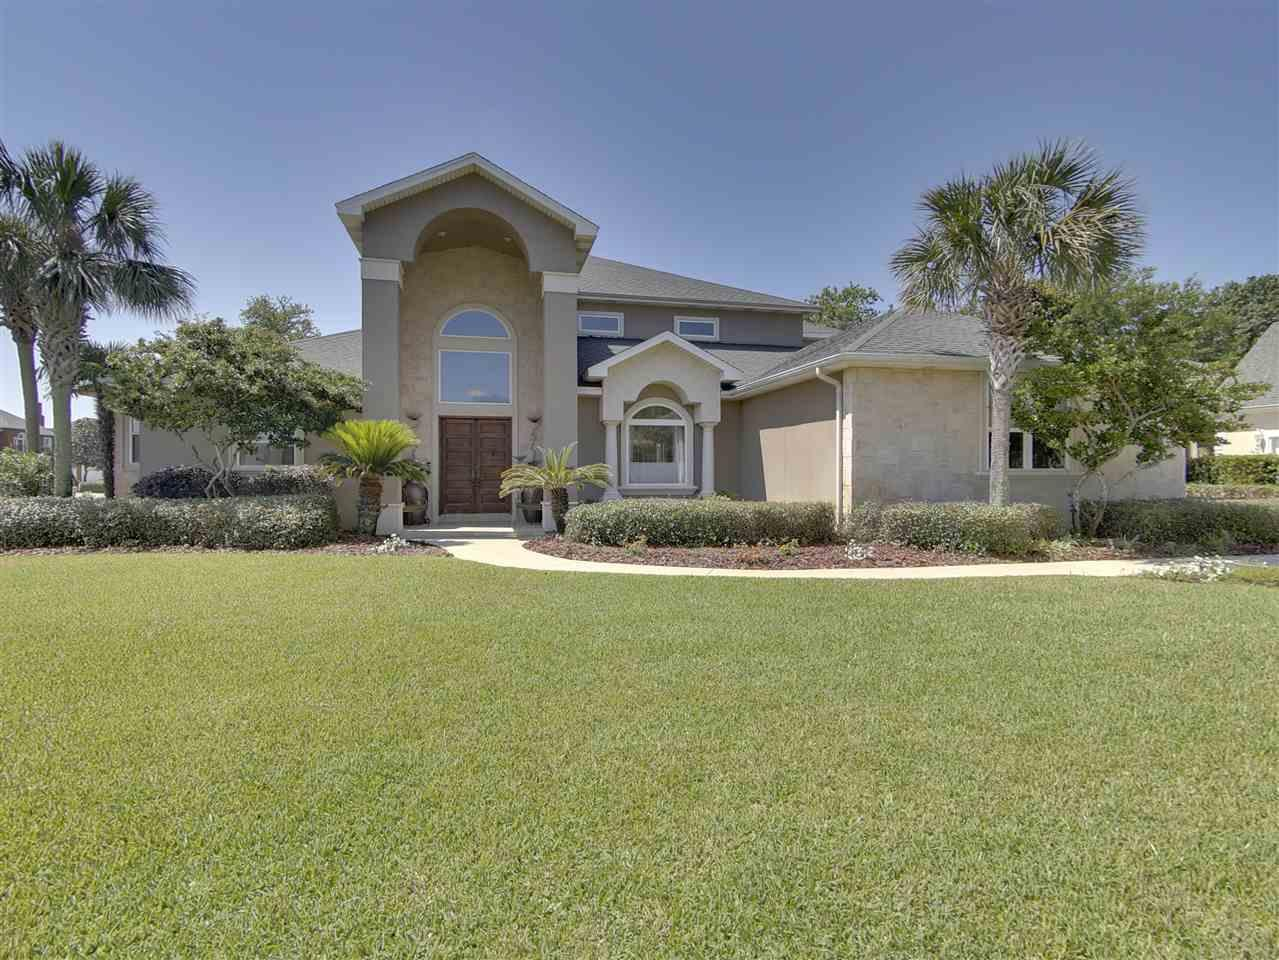 480 James River Rd, Gulf Breeze, FL 32561